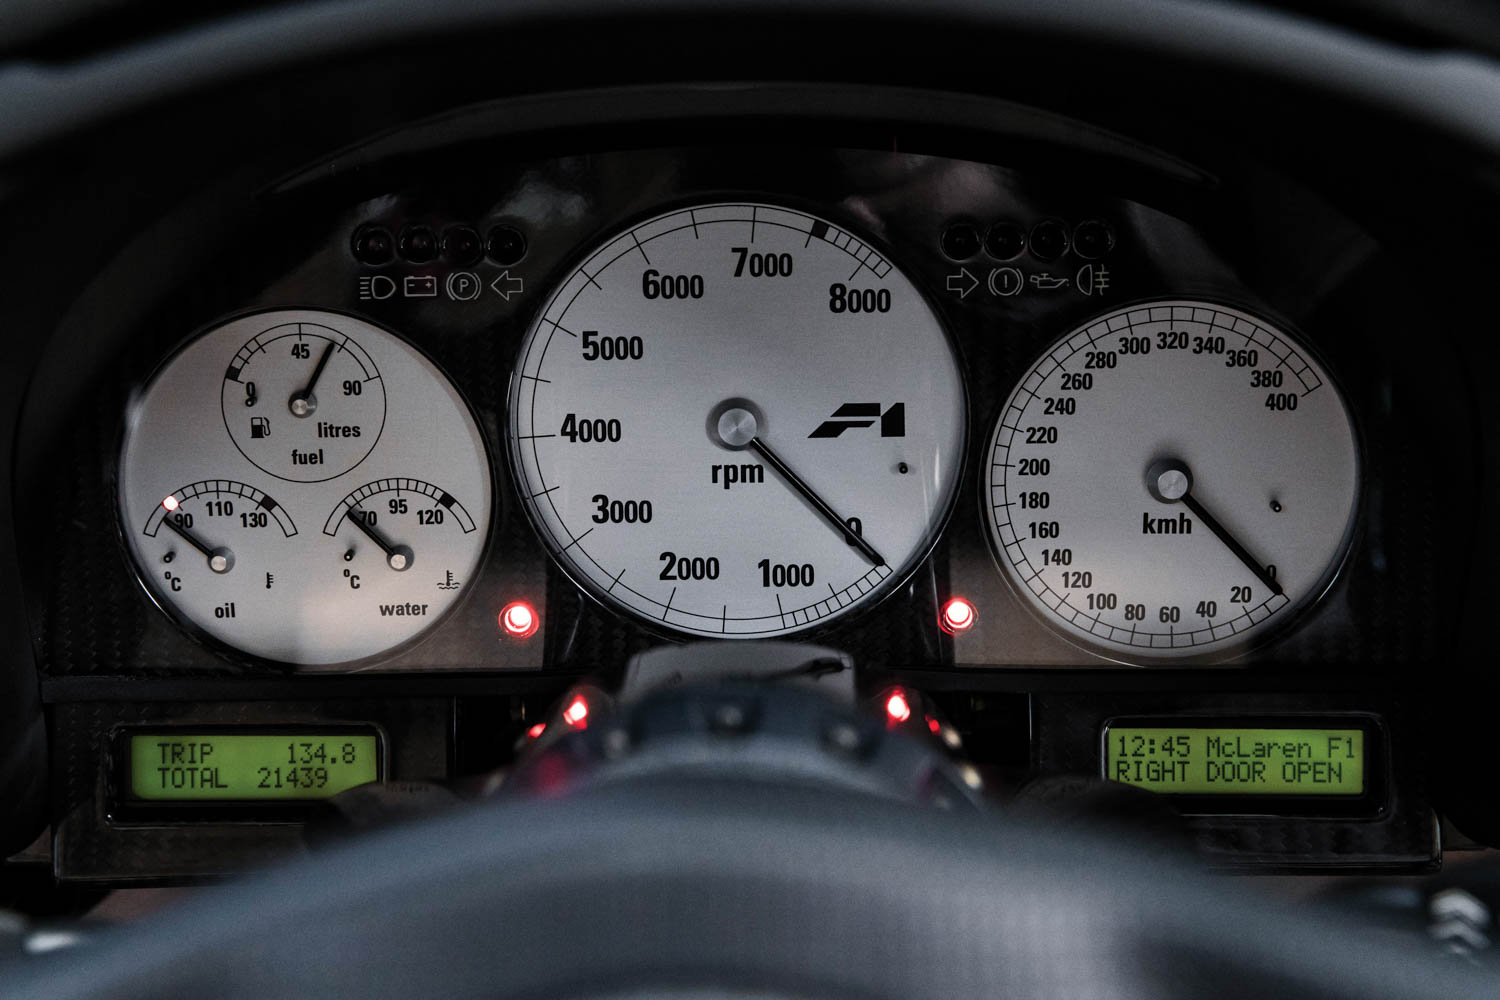 1994 McLaren F1 'LM-Specification' gauges